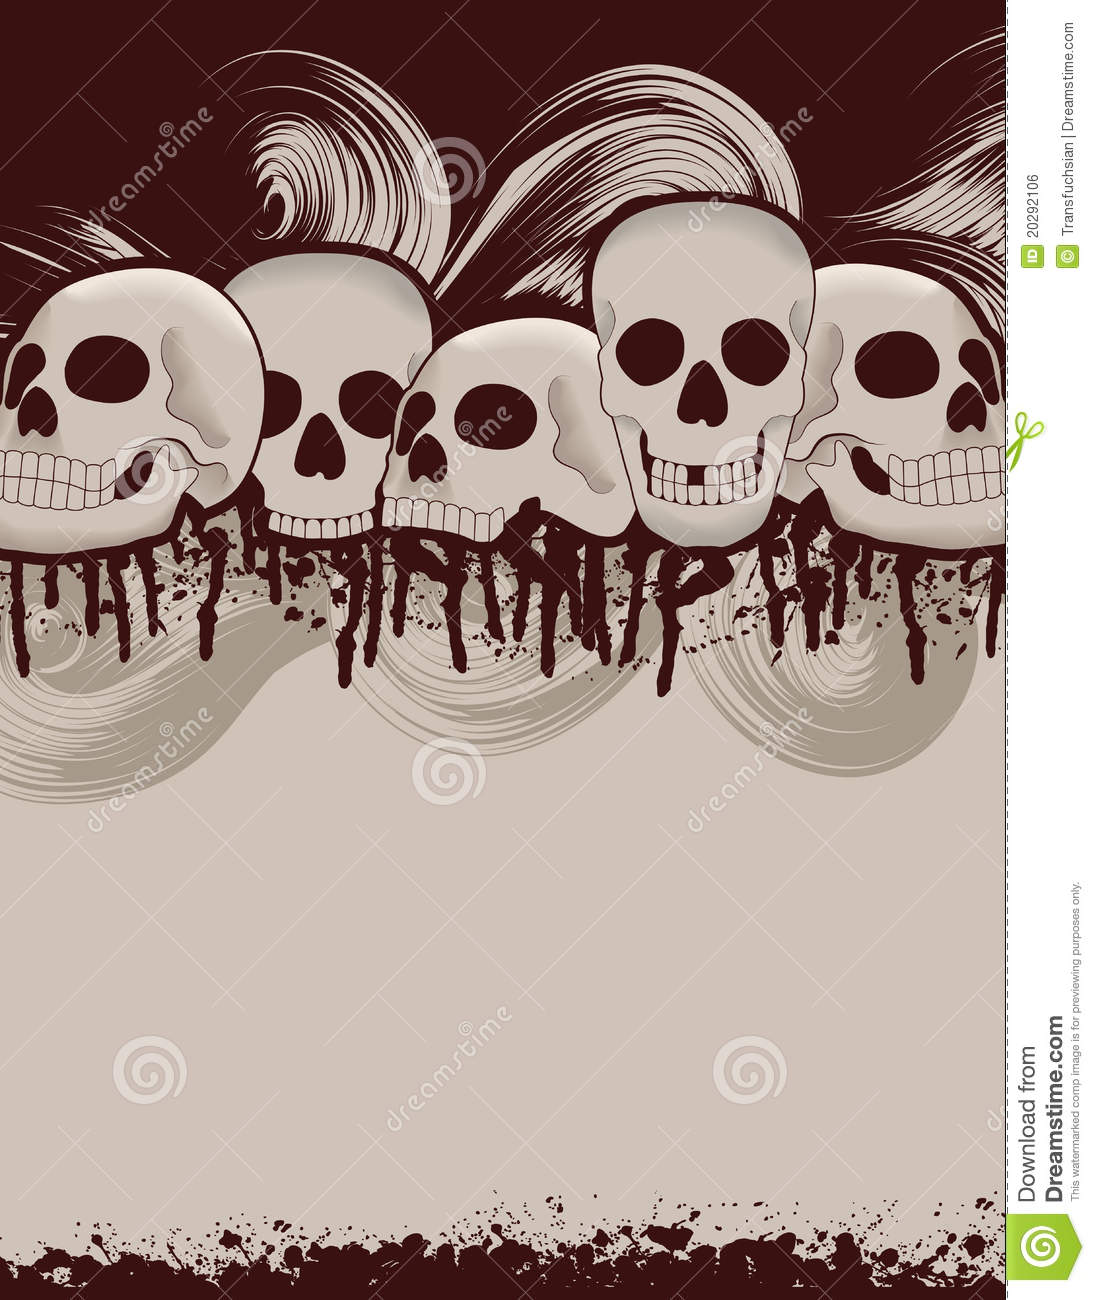 halloween skull and dripping blood background stock vector